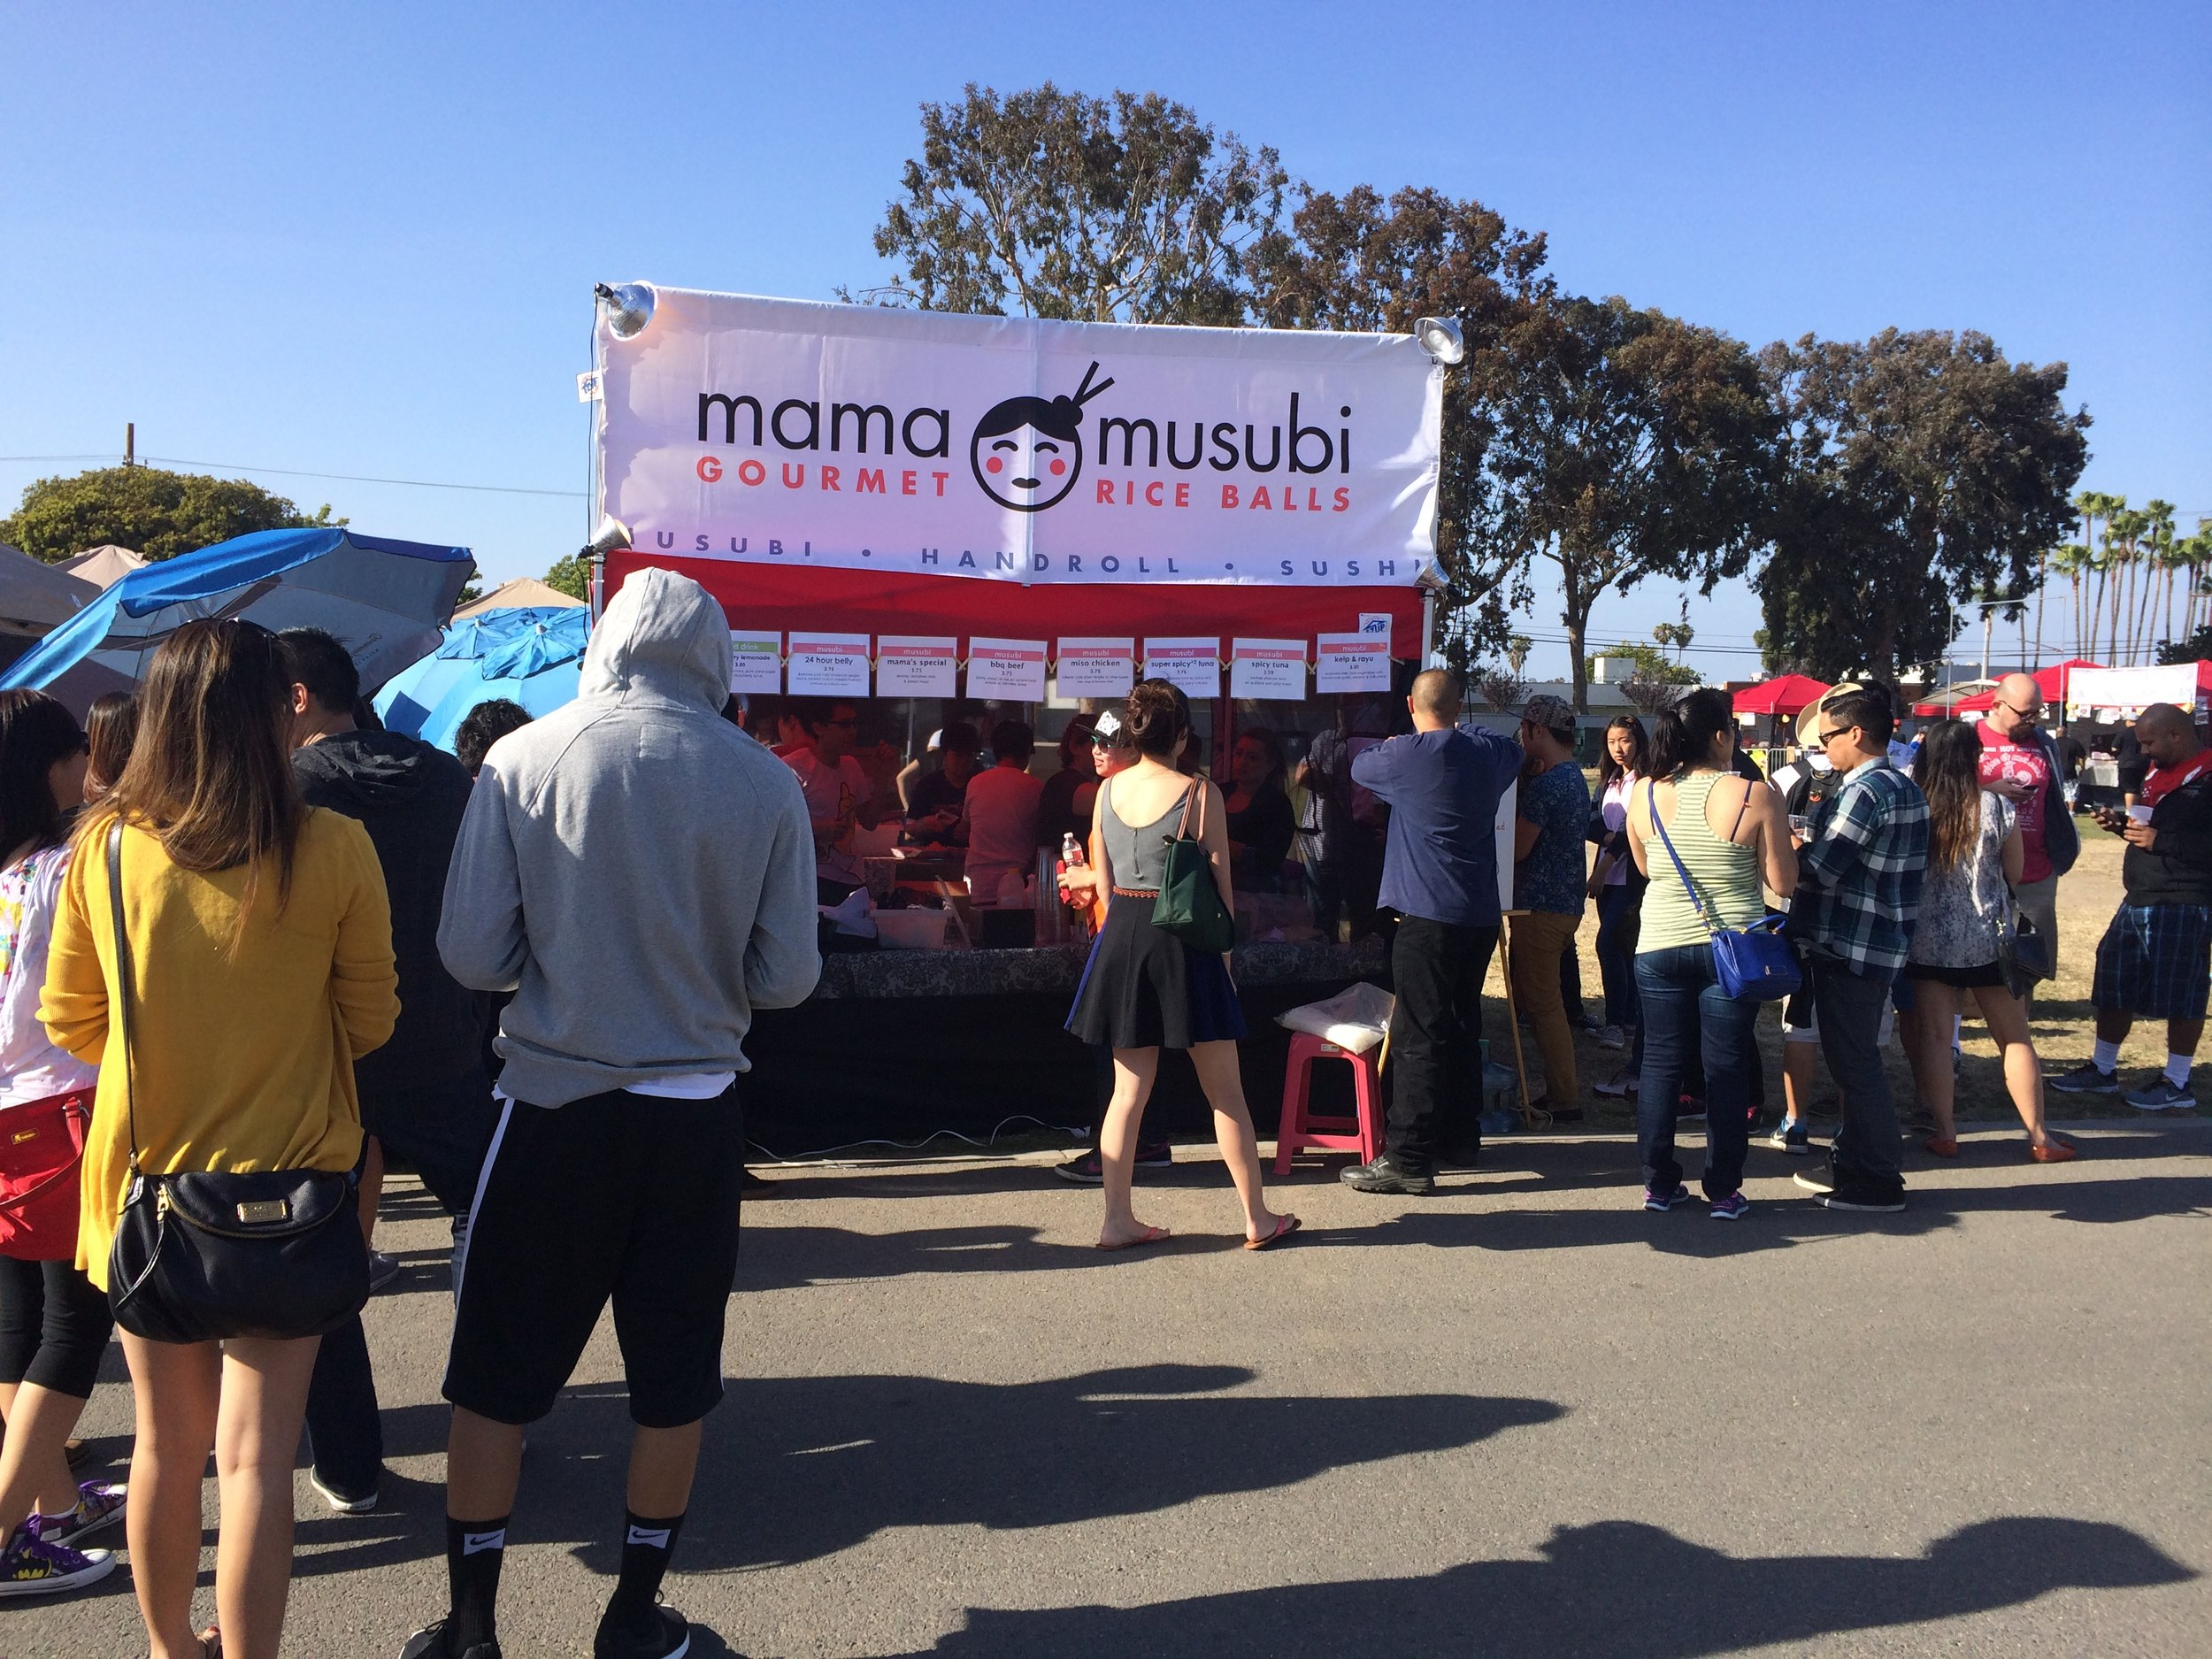 Next stop was Mama Musubi.